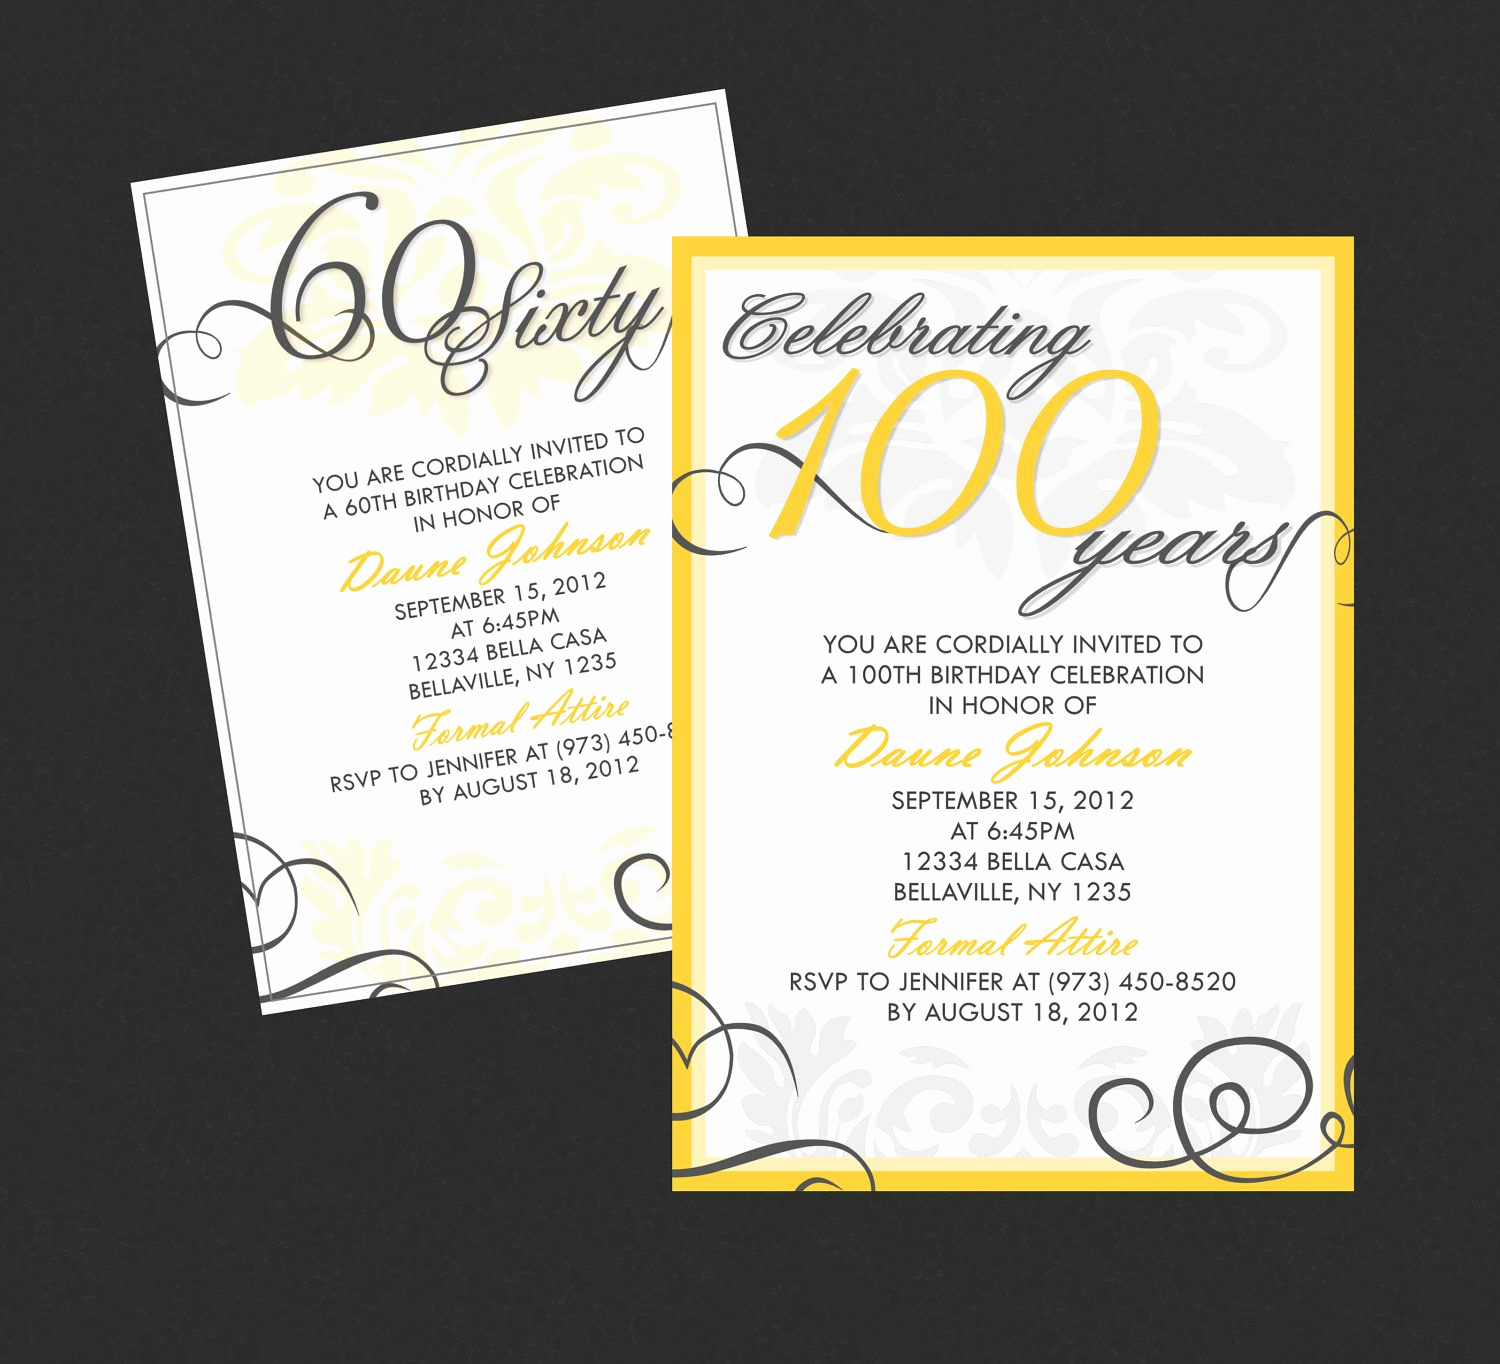 Birthday Invitation Ideas for Adults Best Of Elegant Adult Birthday Invitation Available for Any Age